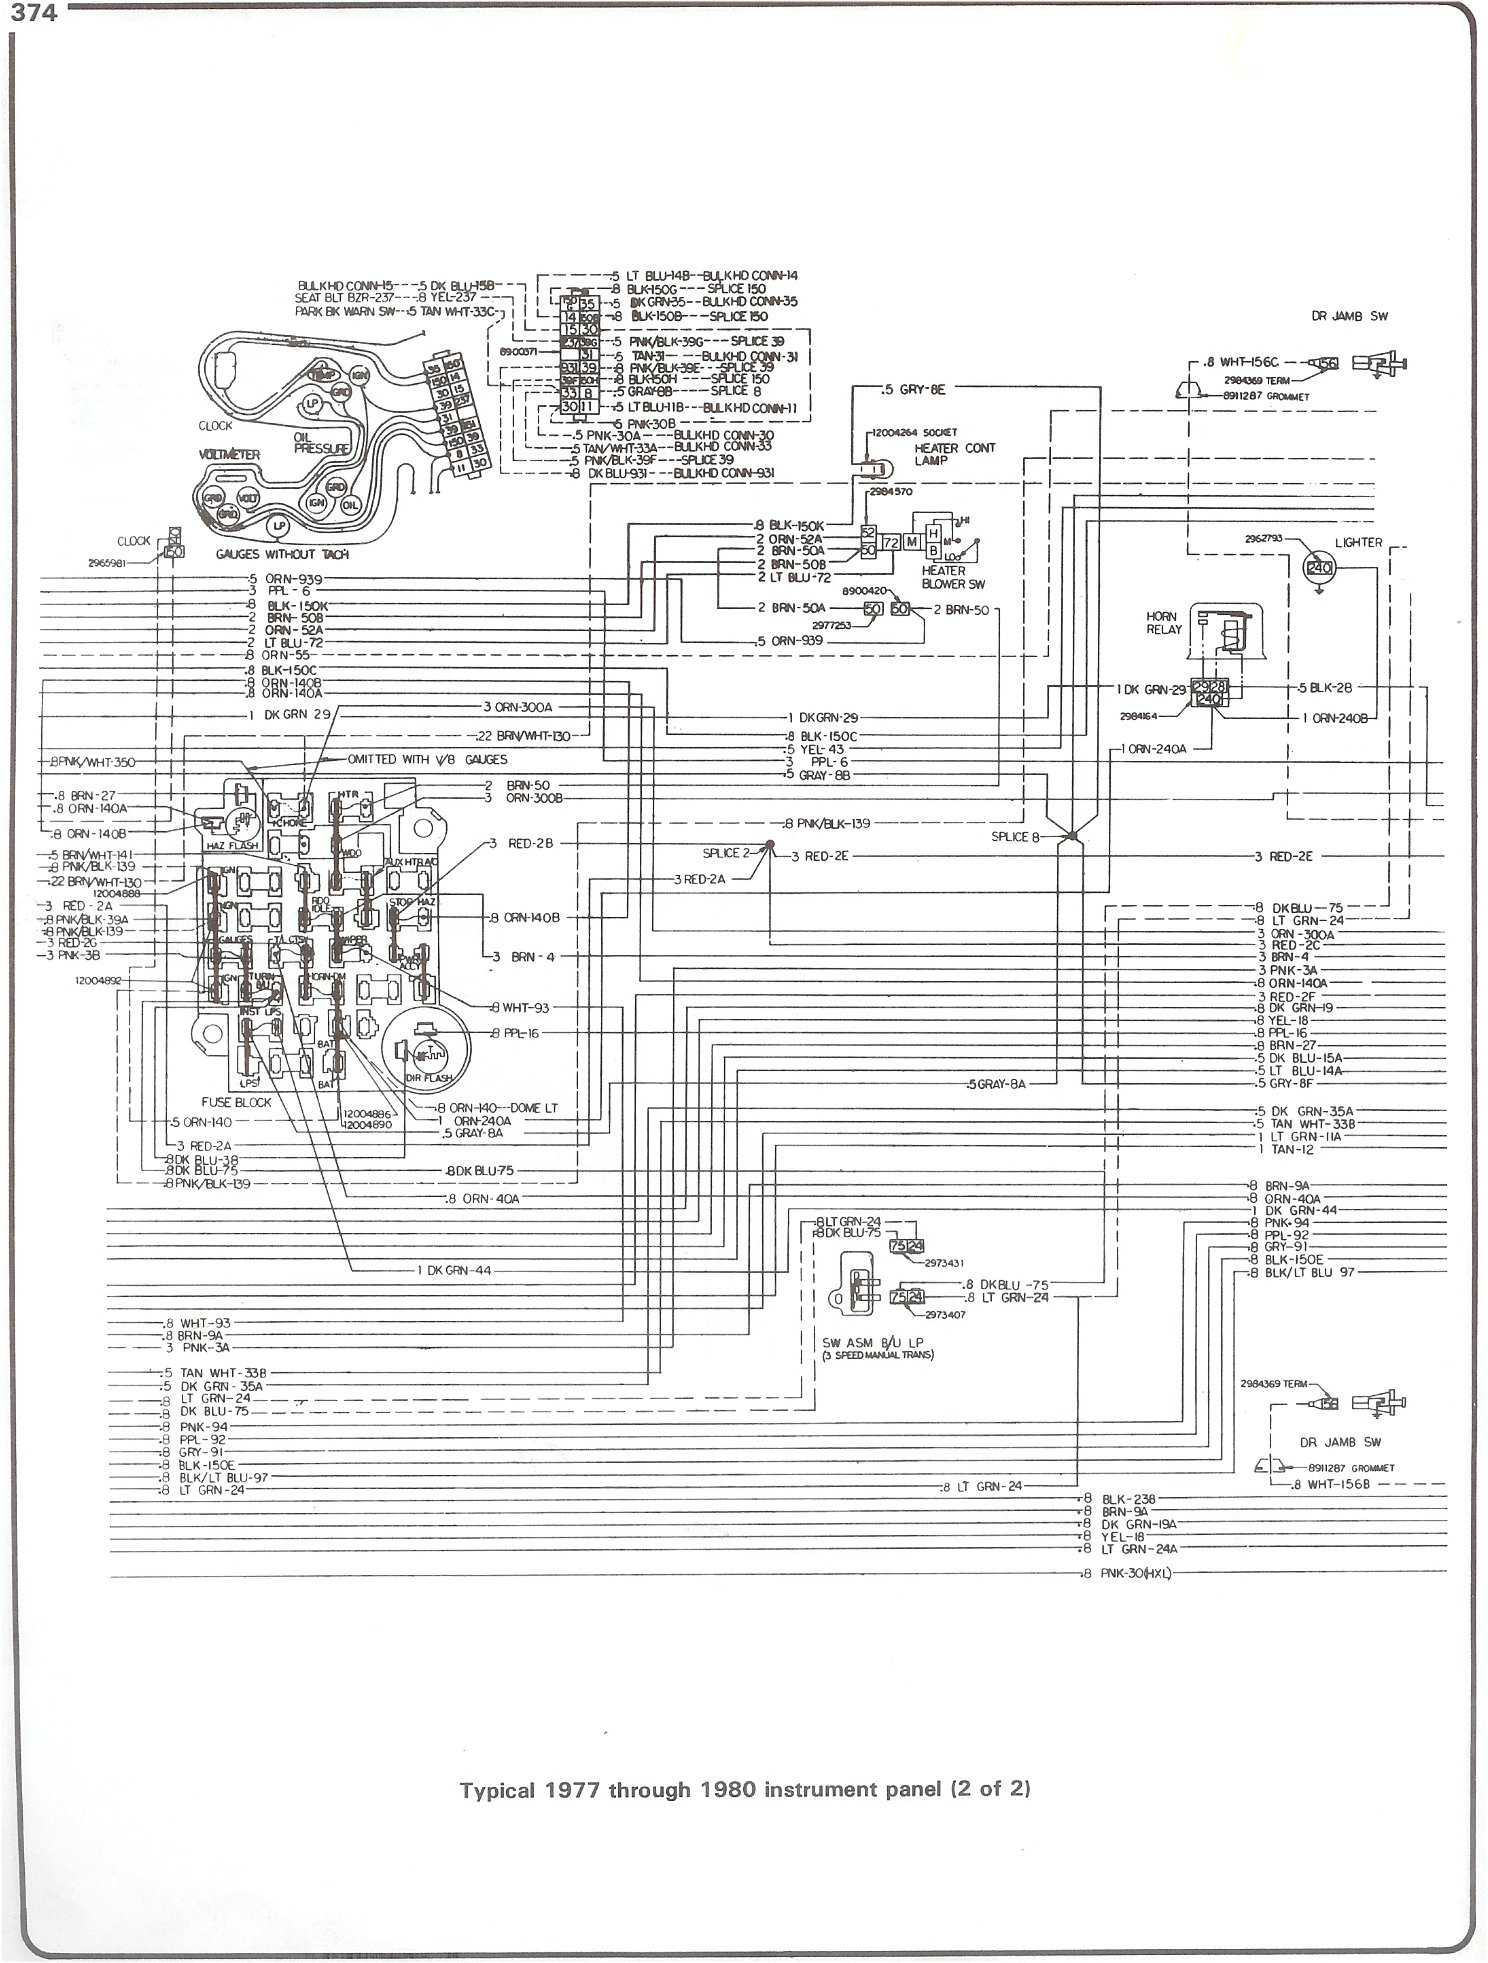 77 80_instrument_pg2 complete 73 87 wiring diagrams 73-87 Chevy Wiring Diagrams Site at creativeand.co